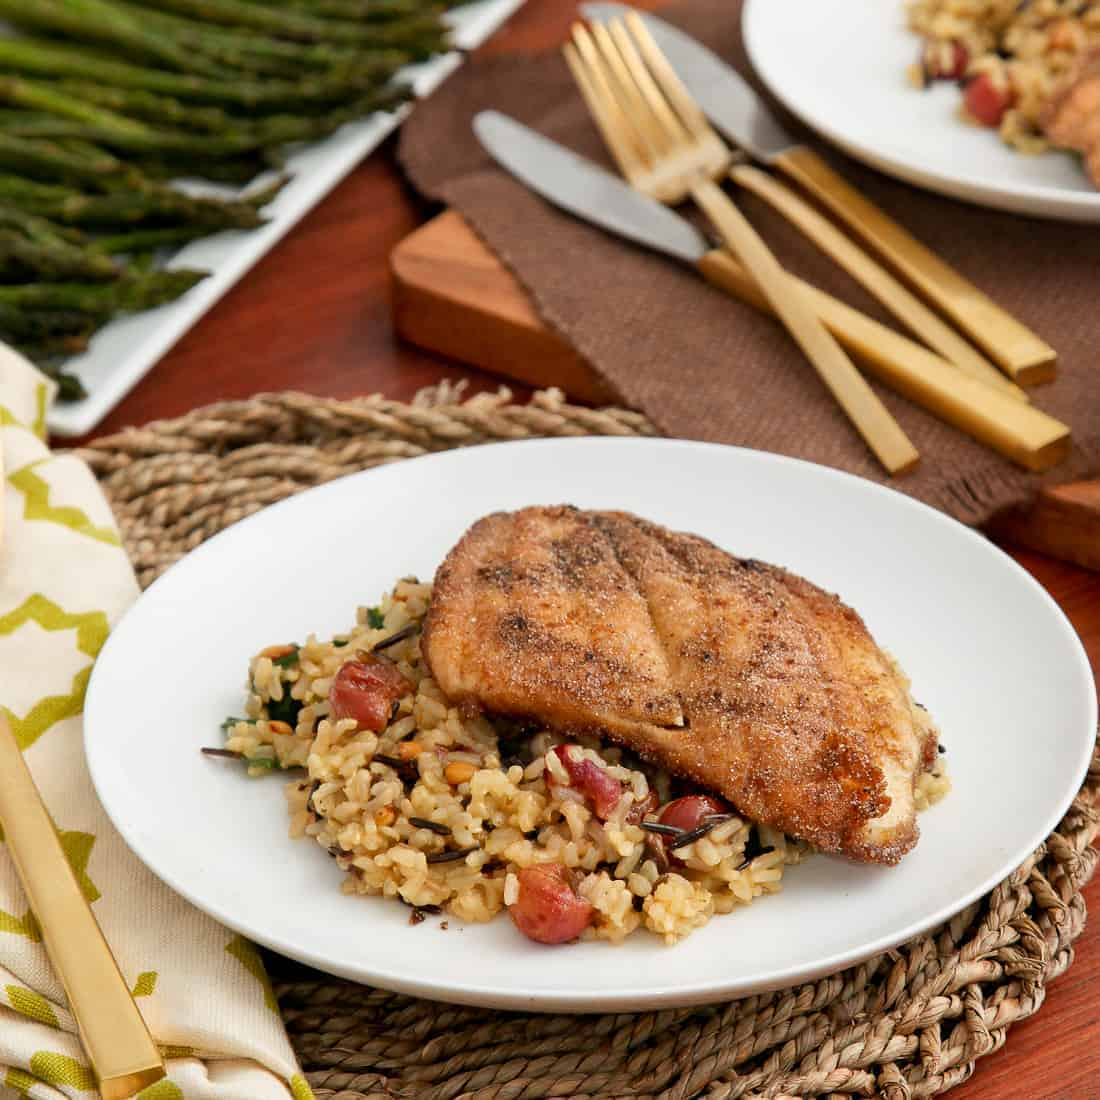 Sole & Mixed Wild Rice with Roasted Grapes